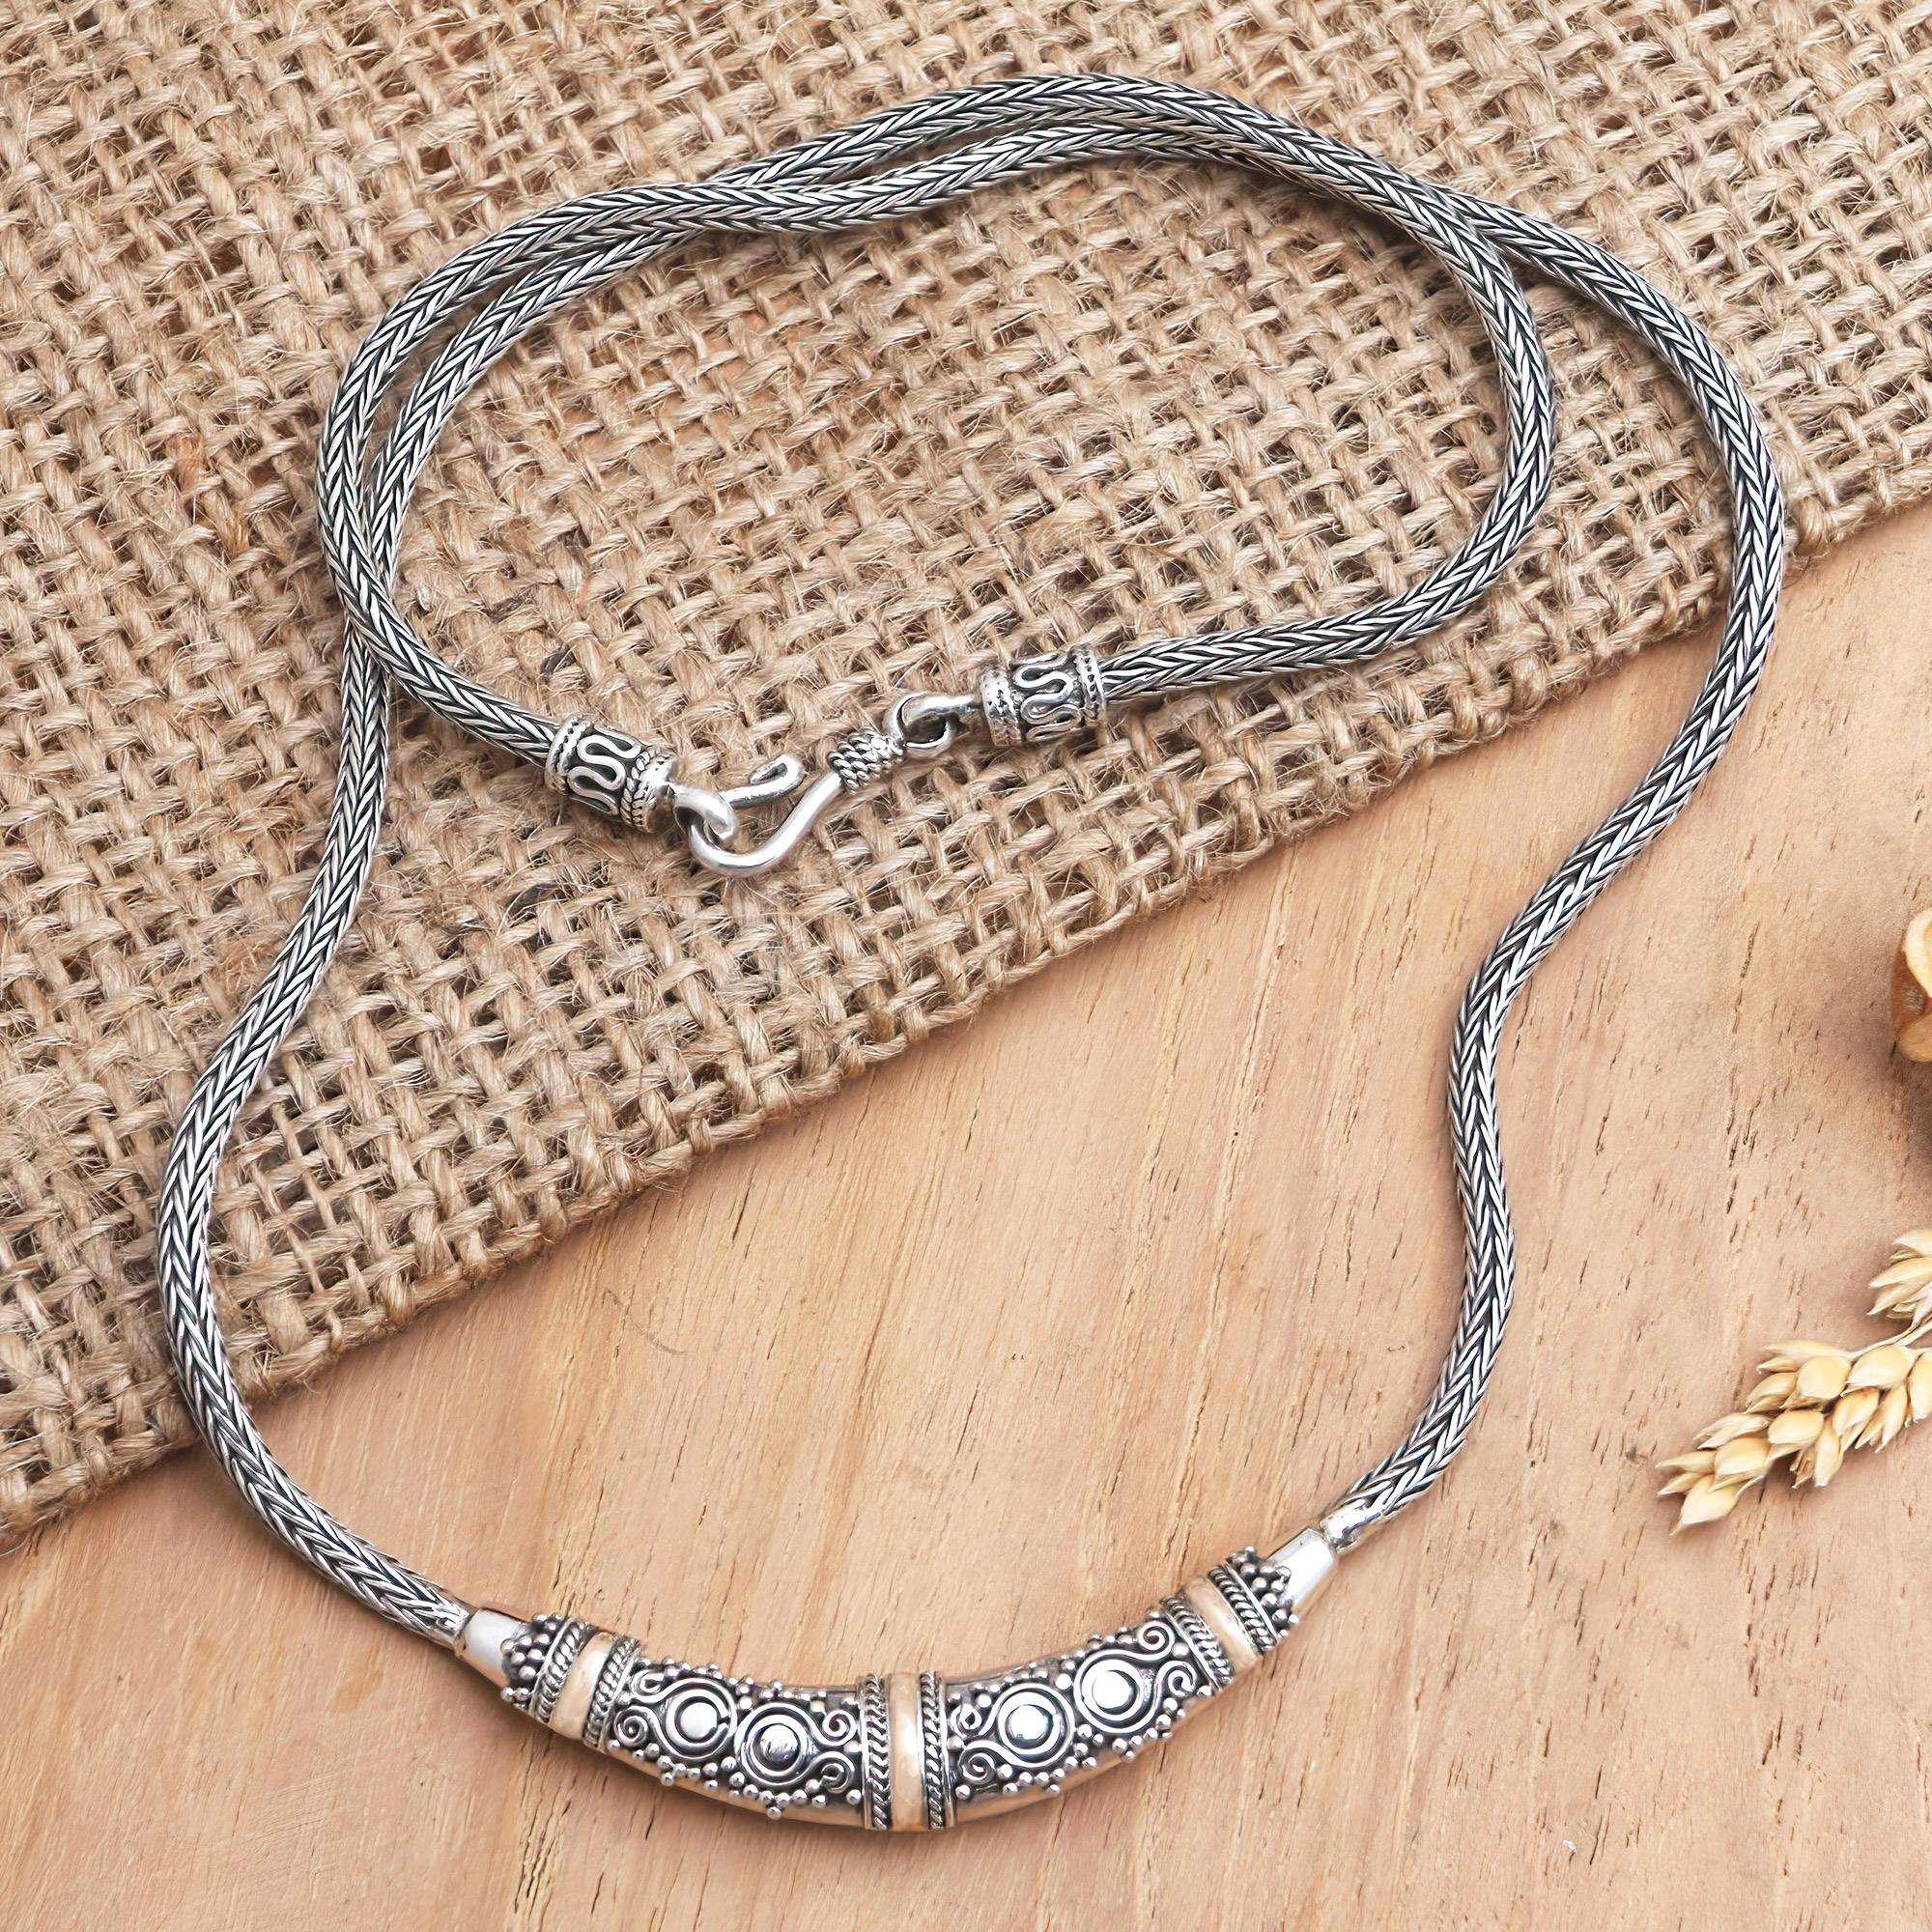 Eternal Flame Bali Sterling Silver Chain Necklace with 18k Gold Accents The Perfect Necklace